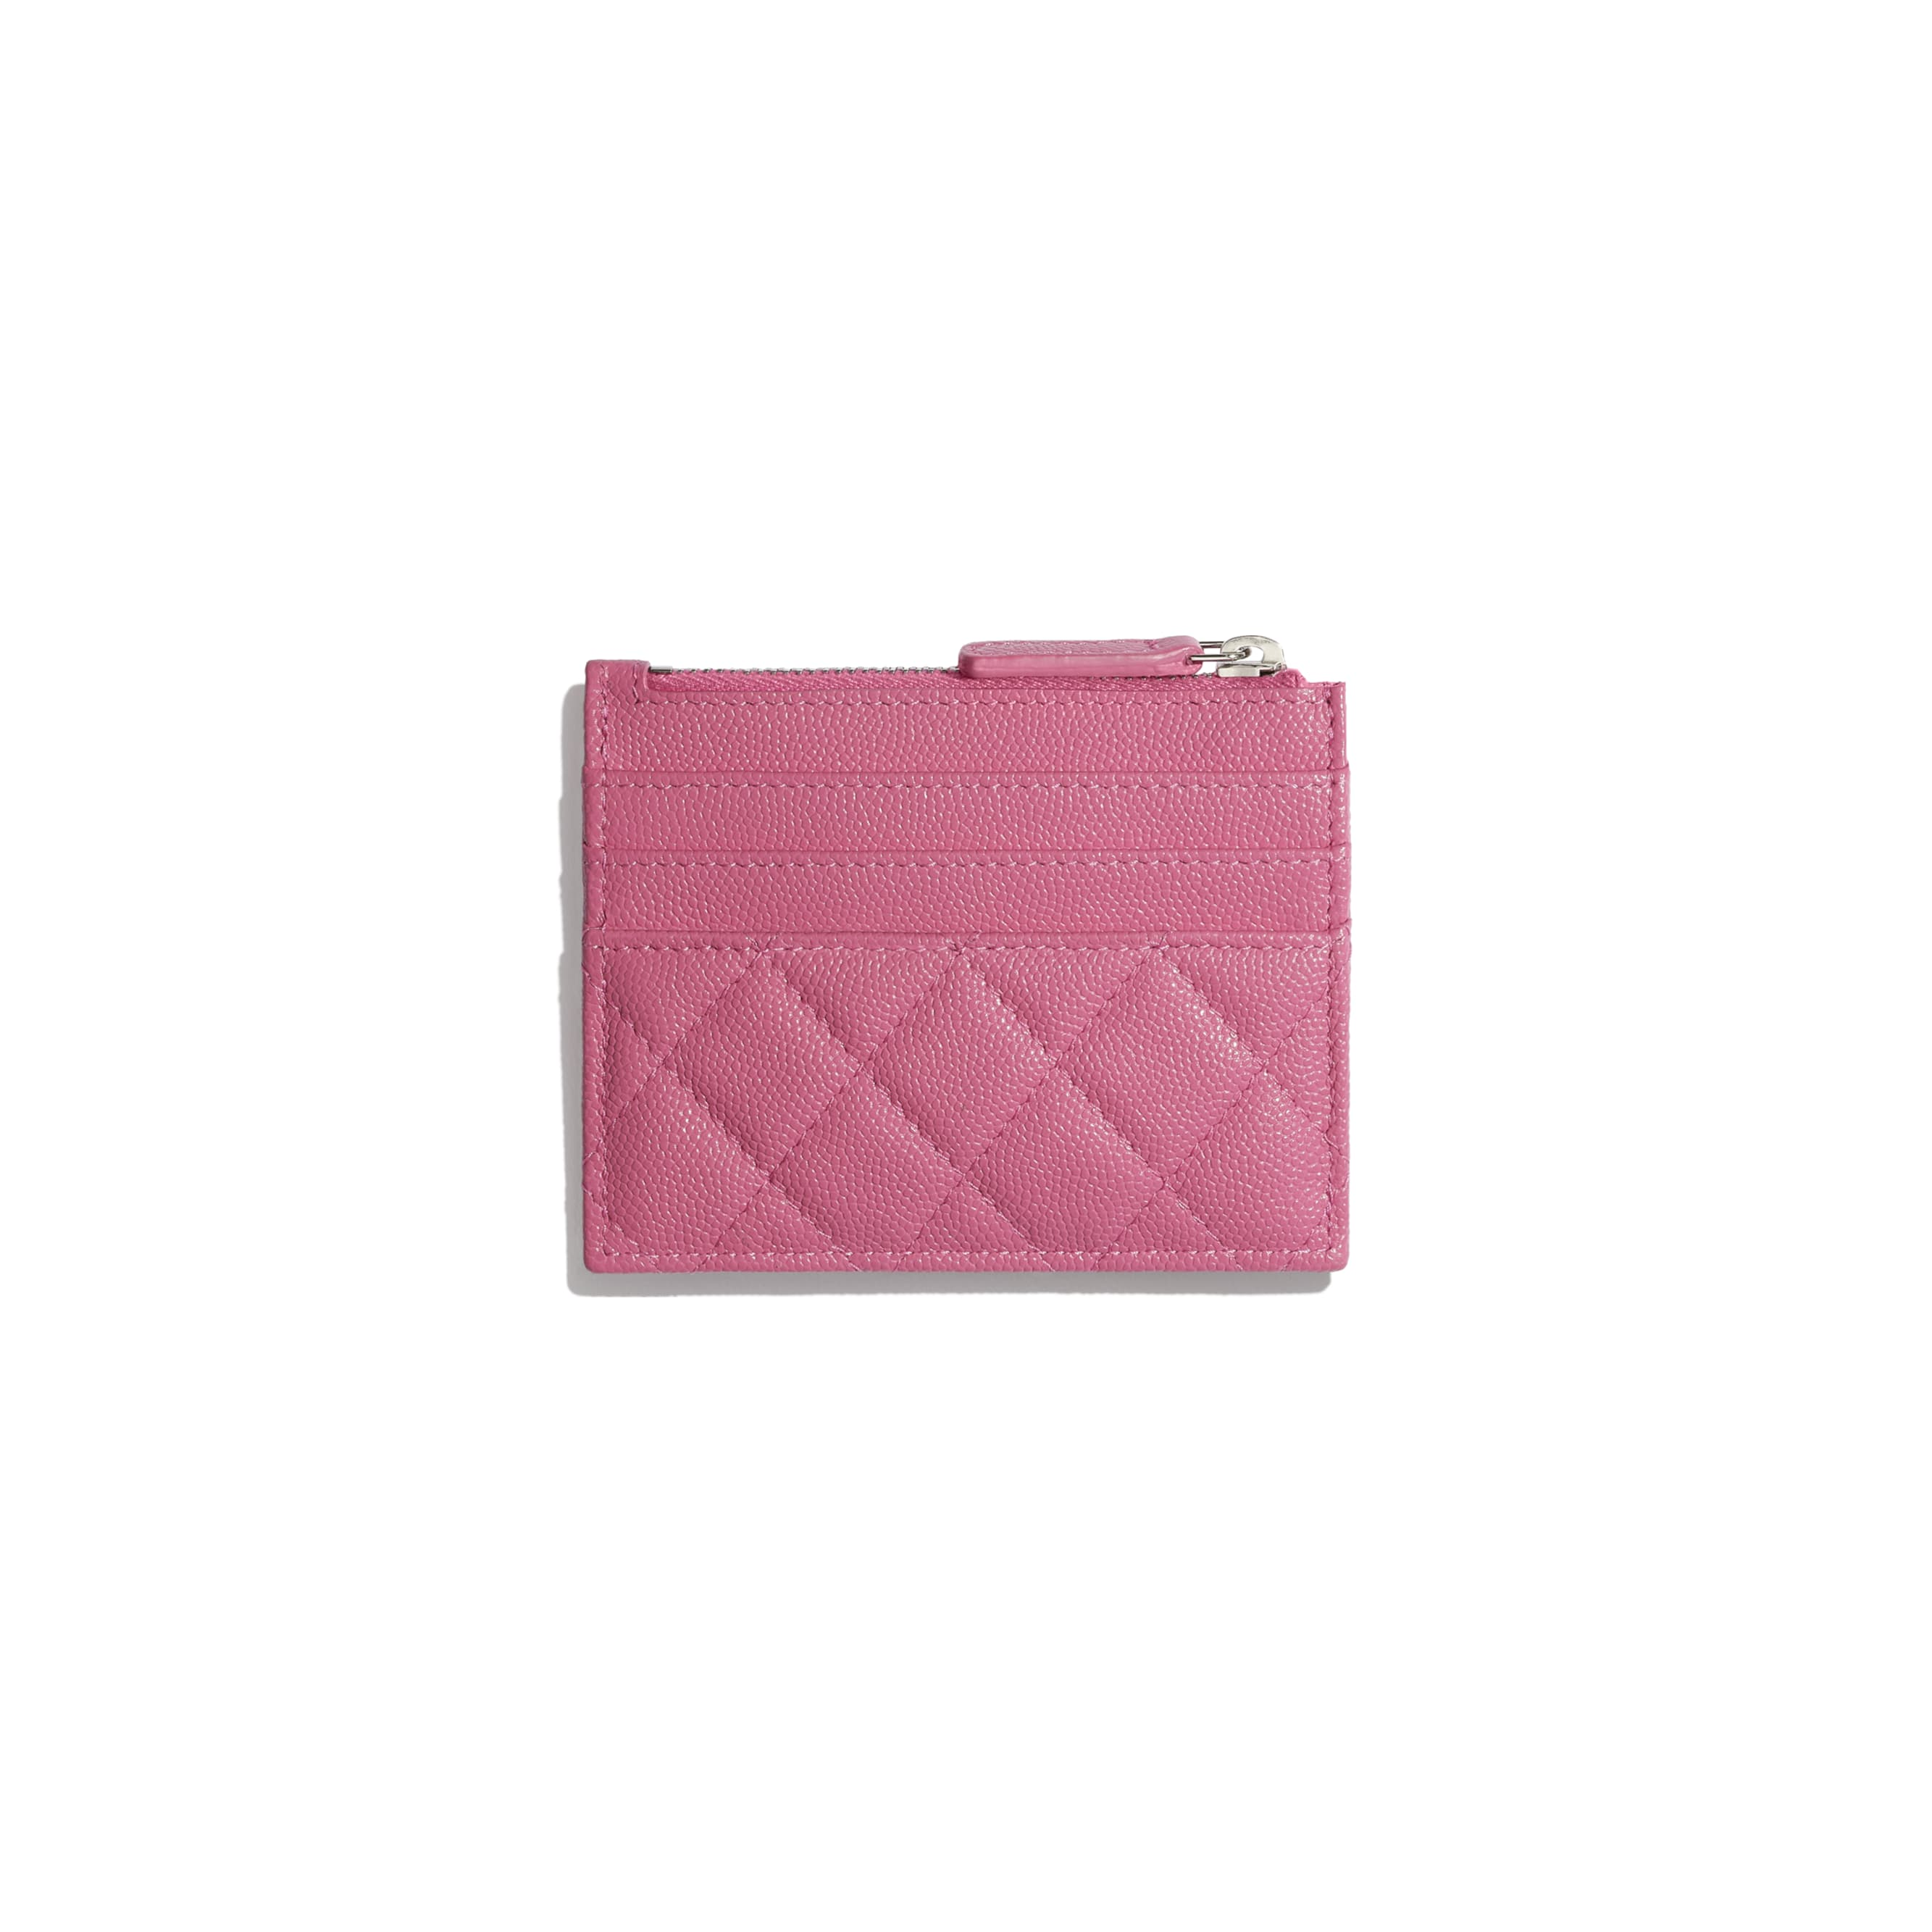 Zipped Card Holder - Pink, Blue & White - Grained Calfskin, Fabric & Silver-Tone Metal - CHANEL - Alternative view - see standard sized version